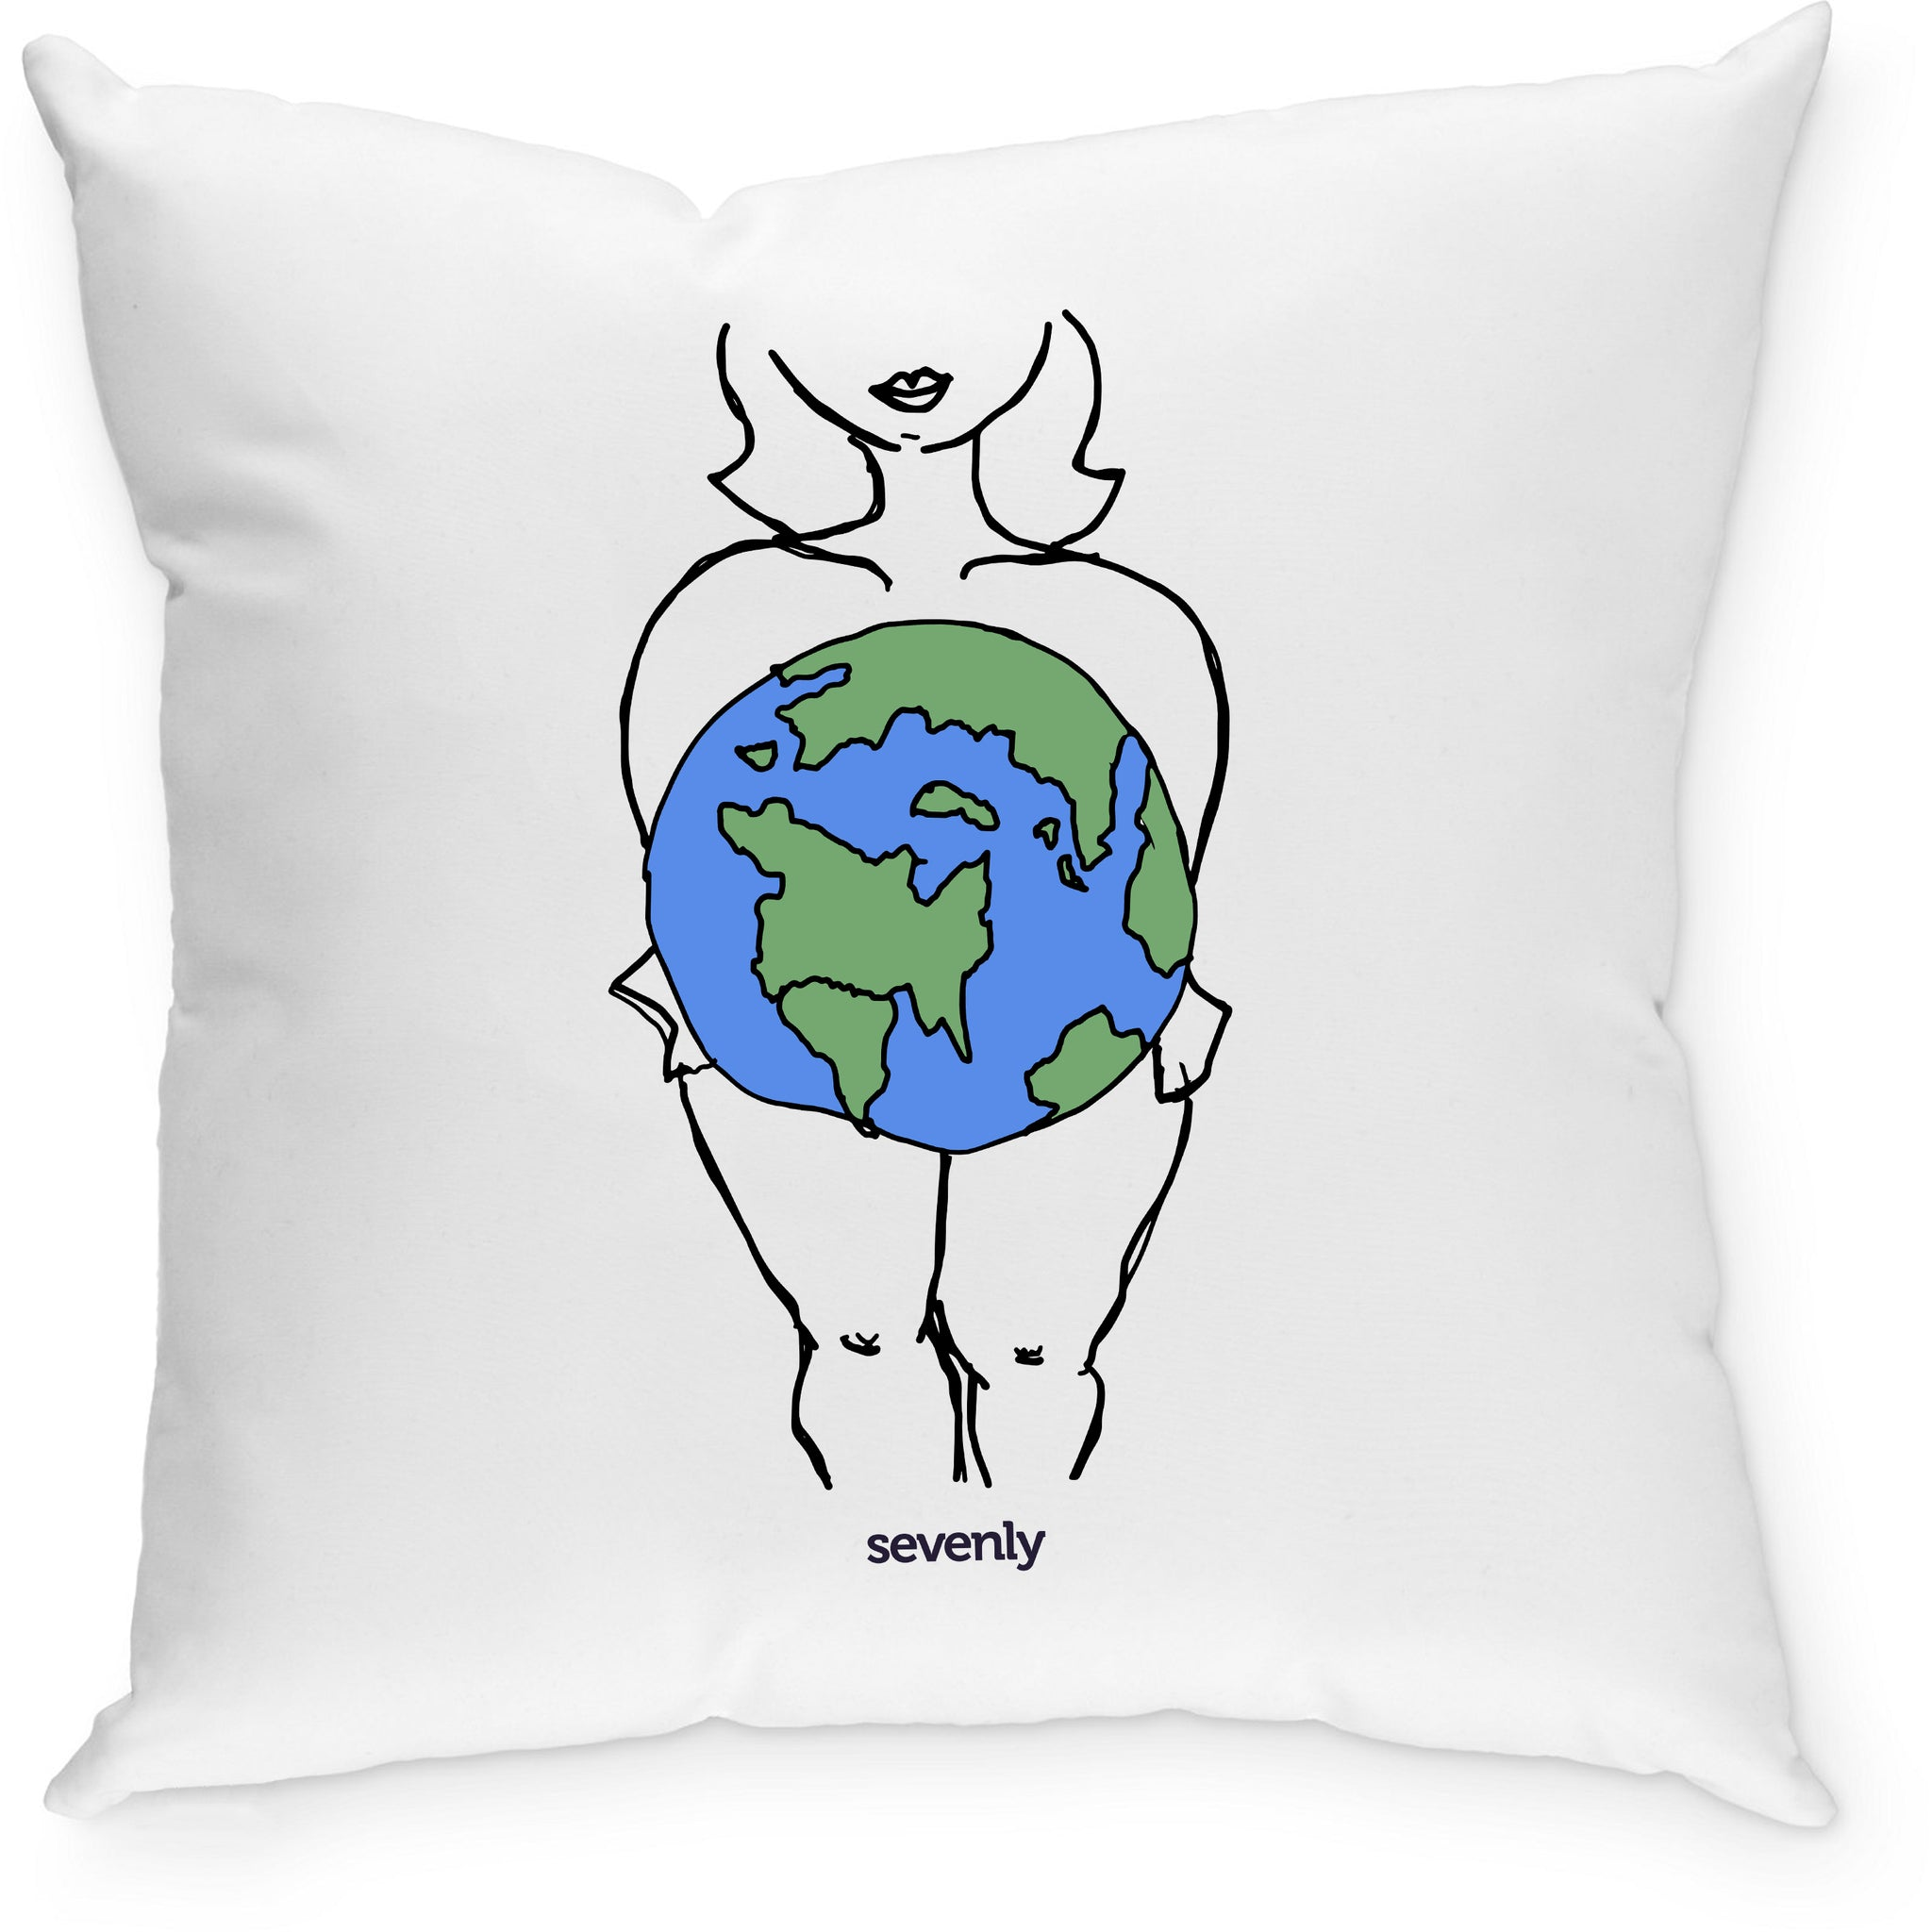 SEVENLY HOME GOODS - COTTON CANVAS DOWN THROW PILLOW - CURVY WORLD